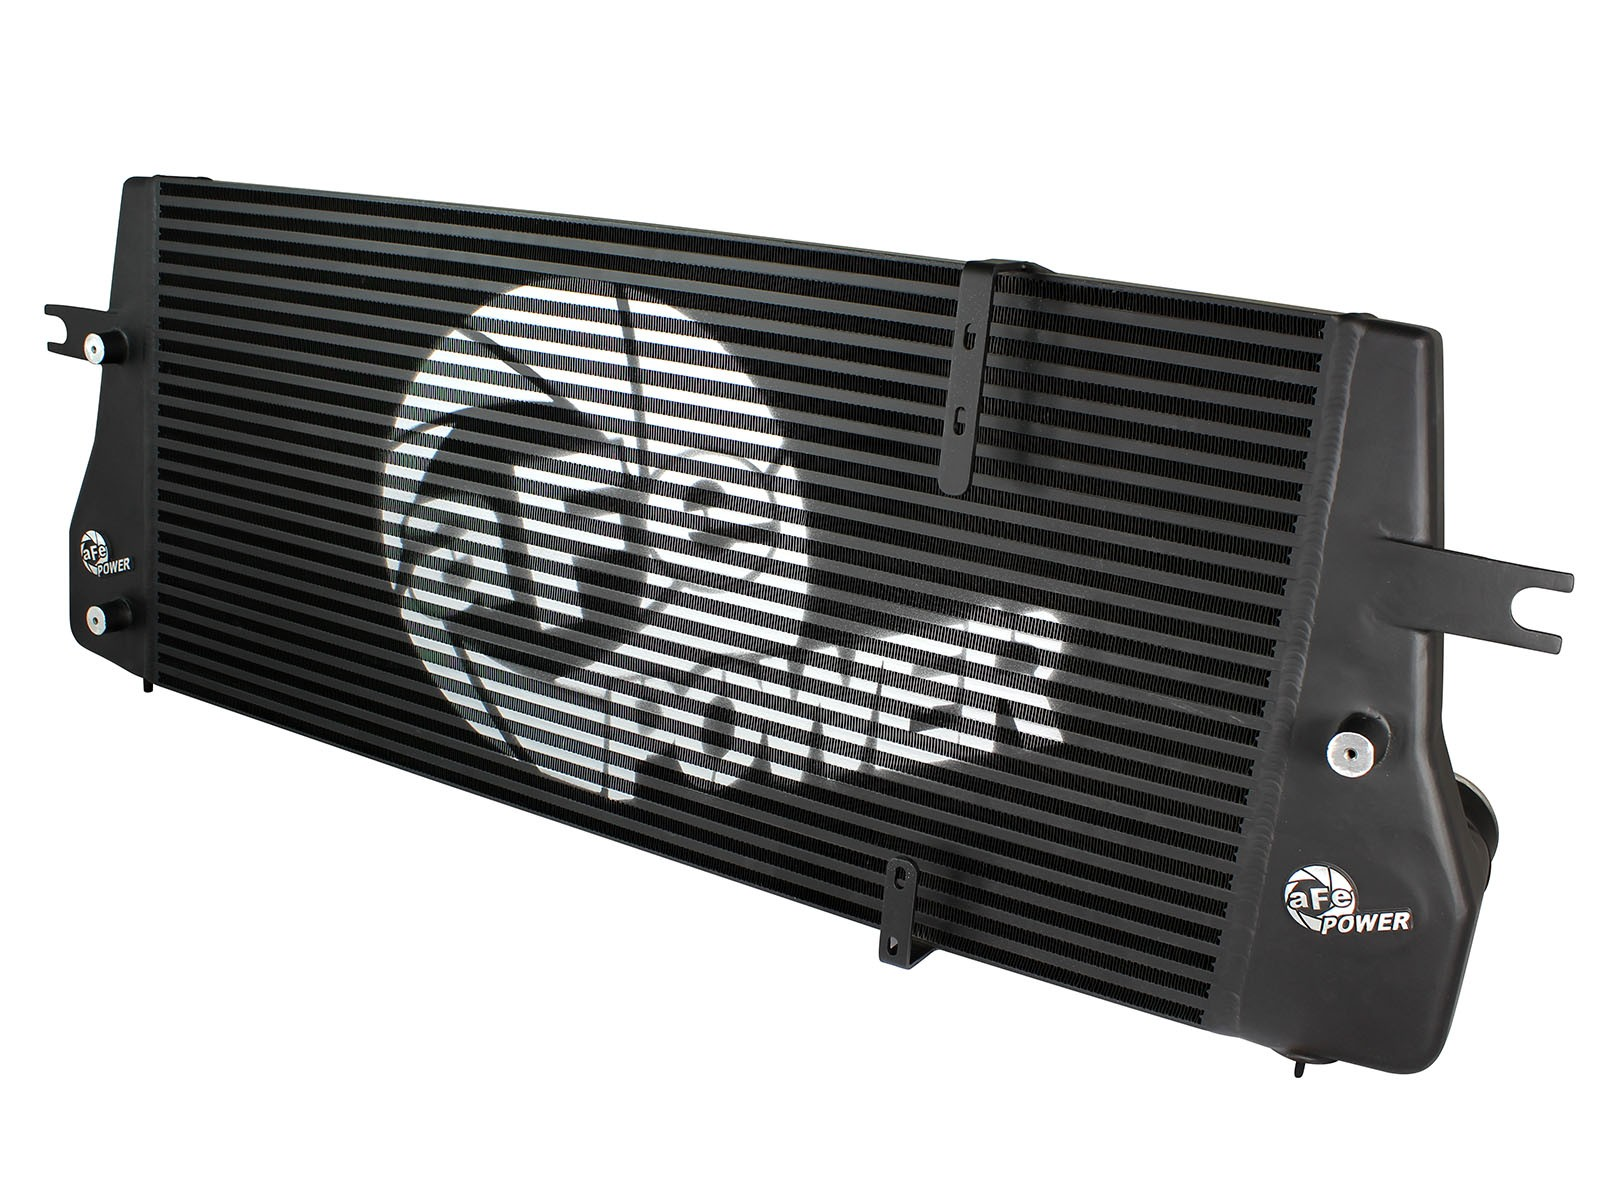 aFe POWER 46-21061 BladeRunner Street Series Cast Intercooler